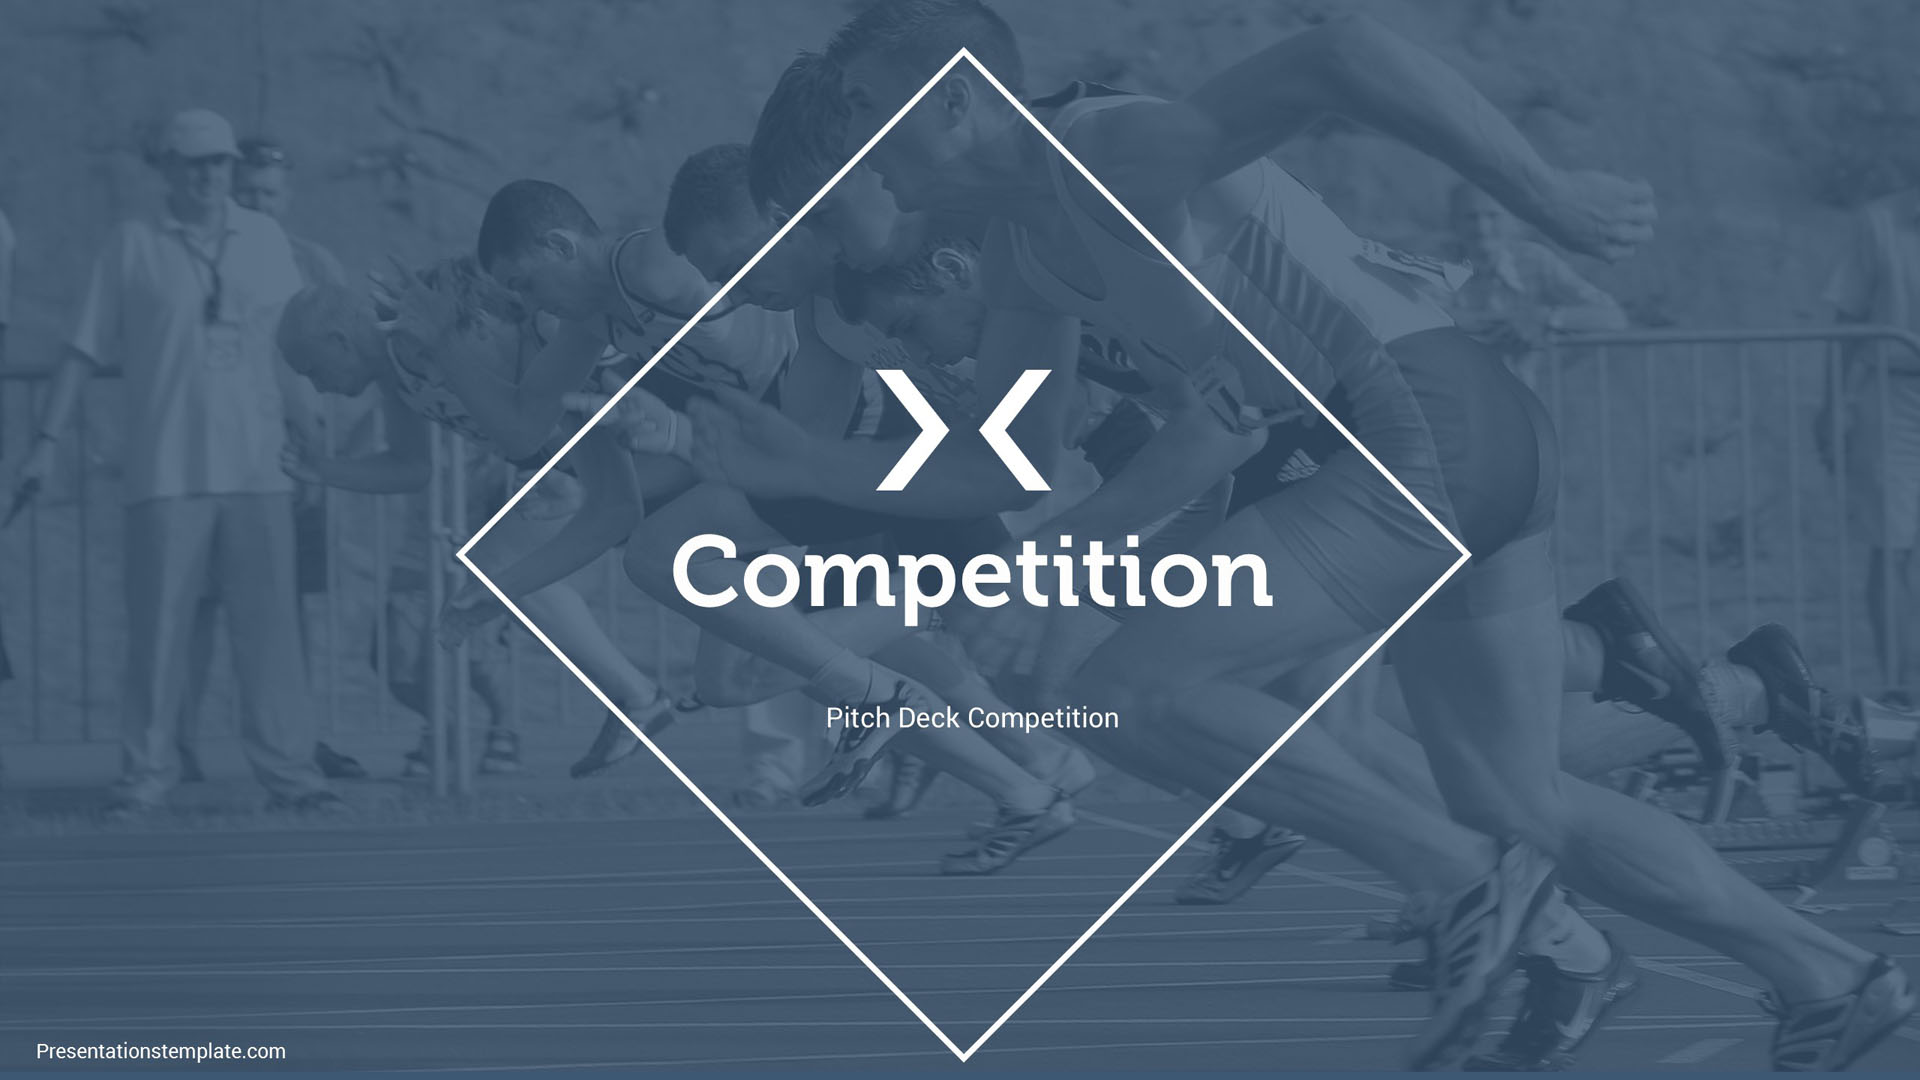 Pitch Deck Competition Examples